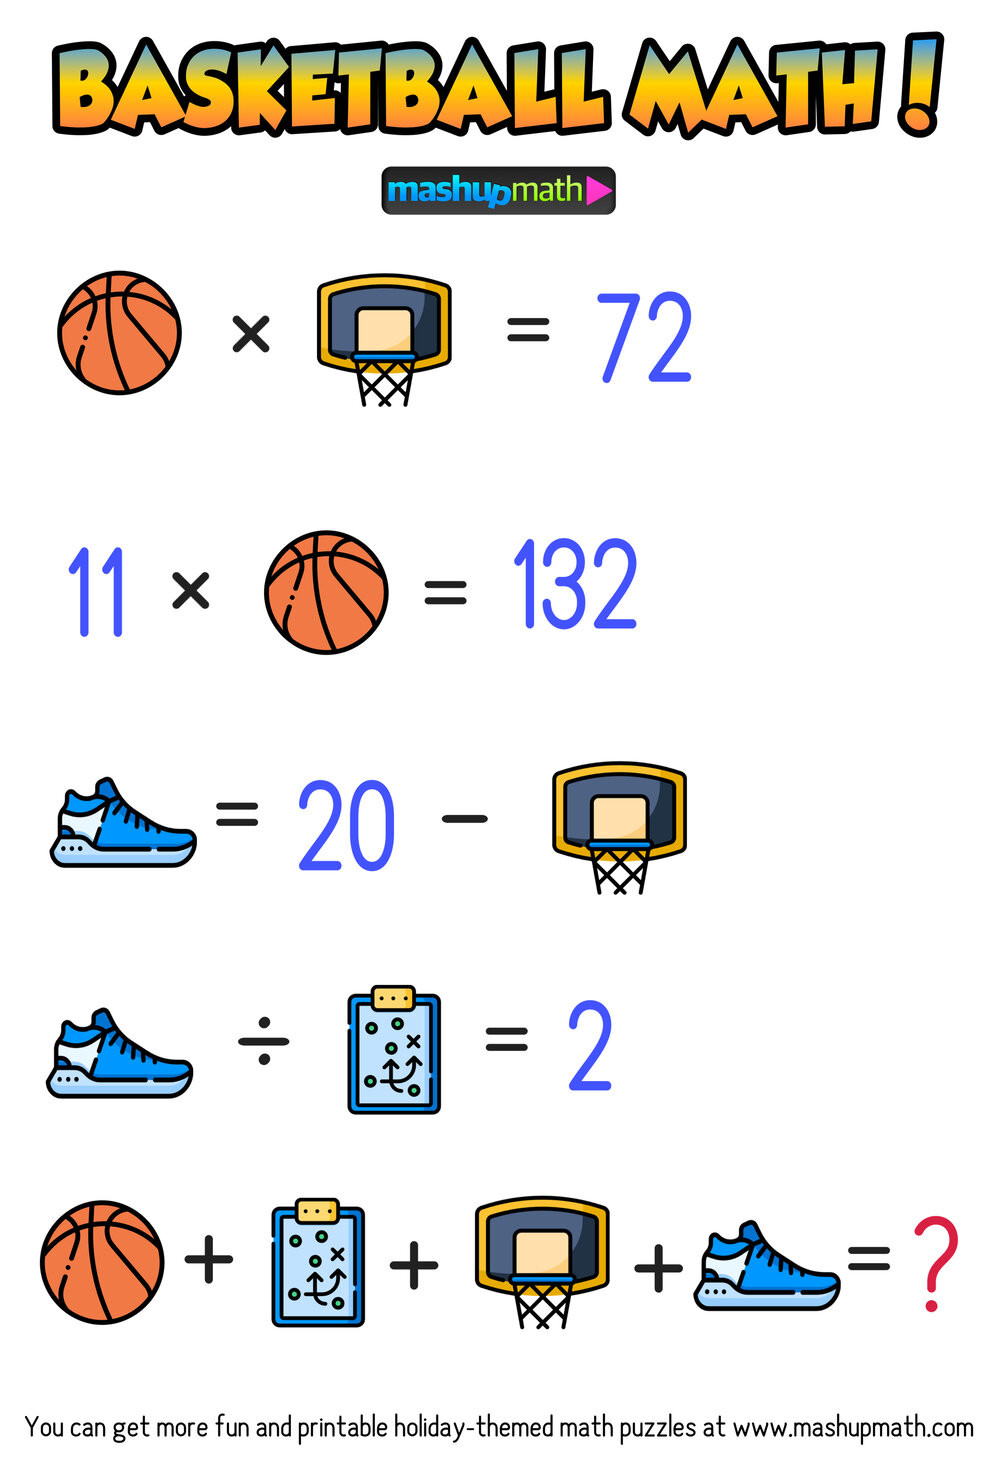 March Madness Math Worksheets are Your Kids Ready for these Basketball Math Puzzles